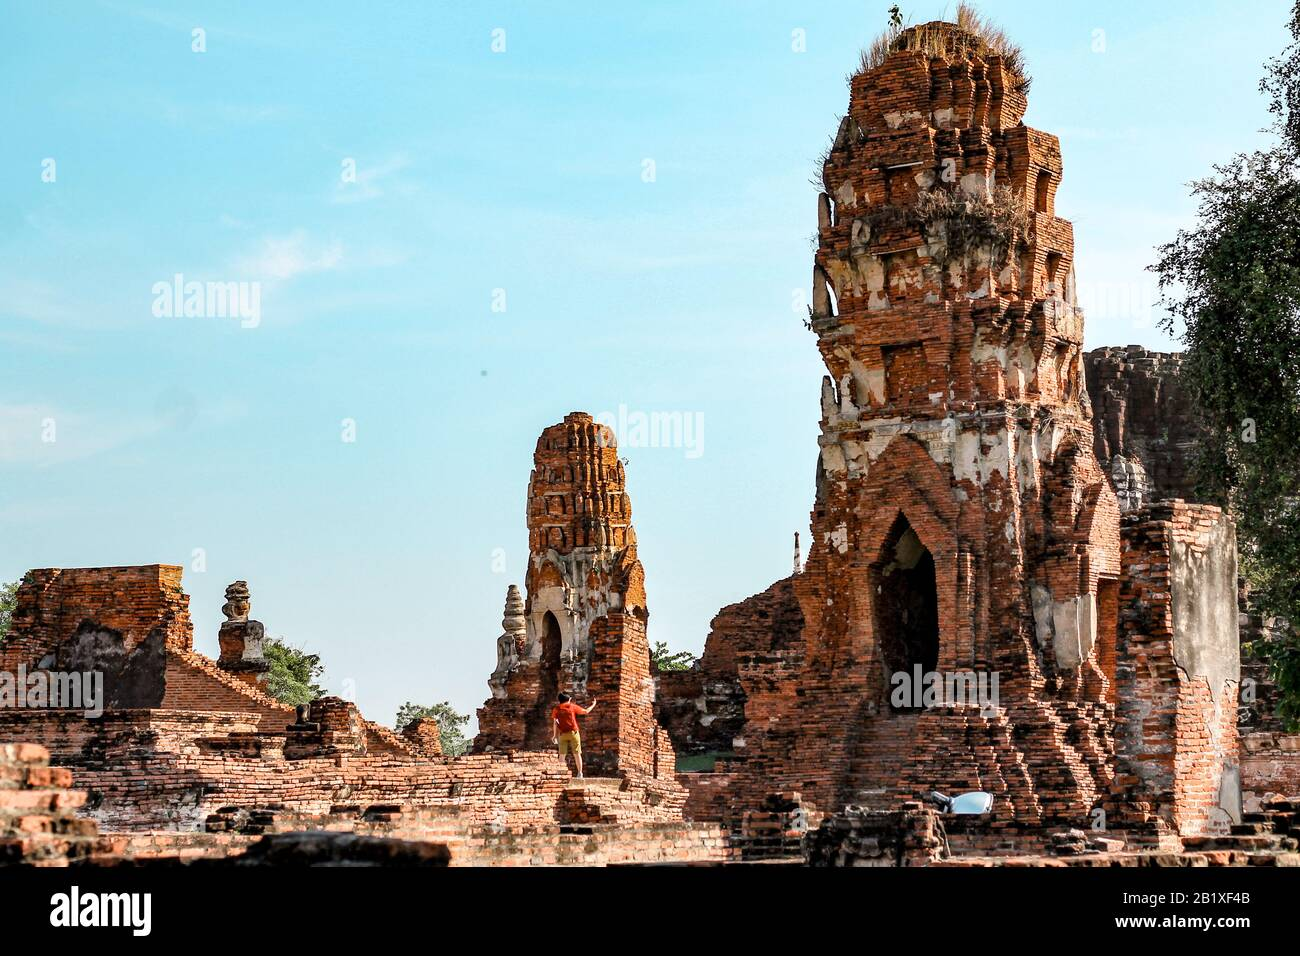 Ancient ruins in Ayutthaya Historical Park which is one of the famous cultural travel destination in Thailand Stock Photo